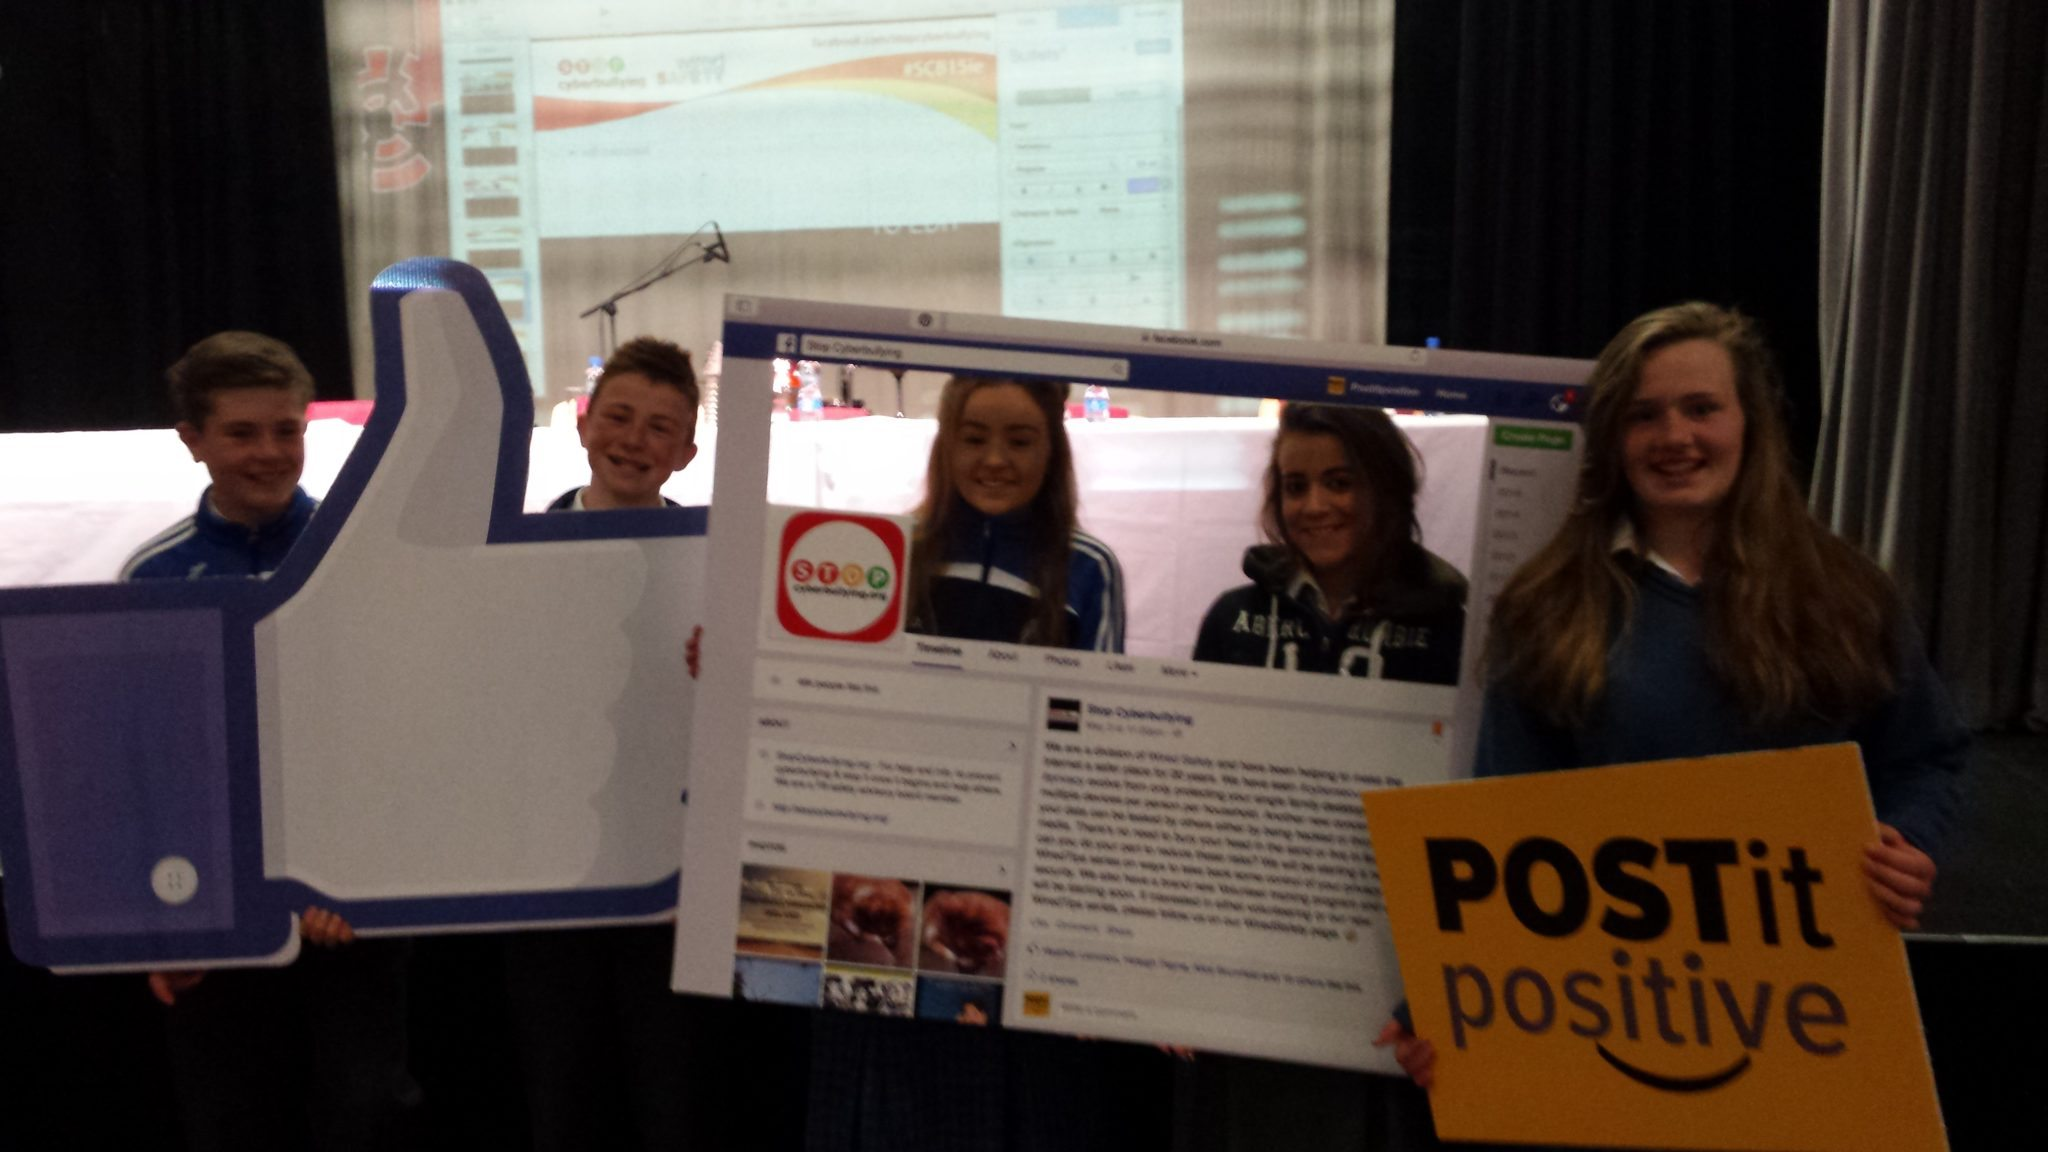 The Global Stop Cyberbullying Youth Summit 2015 : Danny Moriarty, Jack Corkery, Alice Duffy, Rhea Crowley, Breda Magner